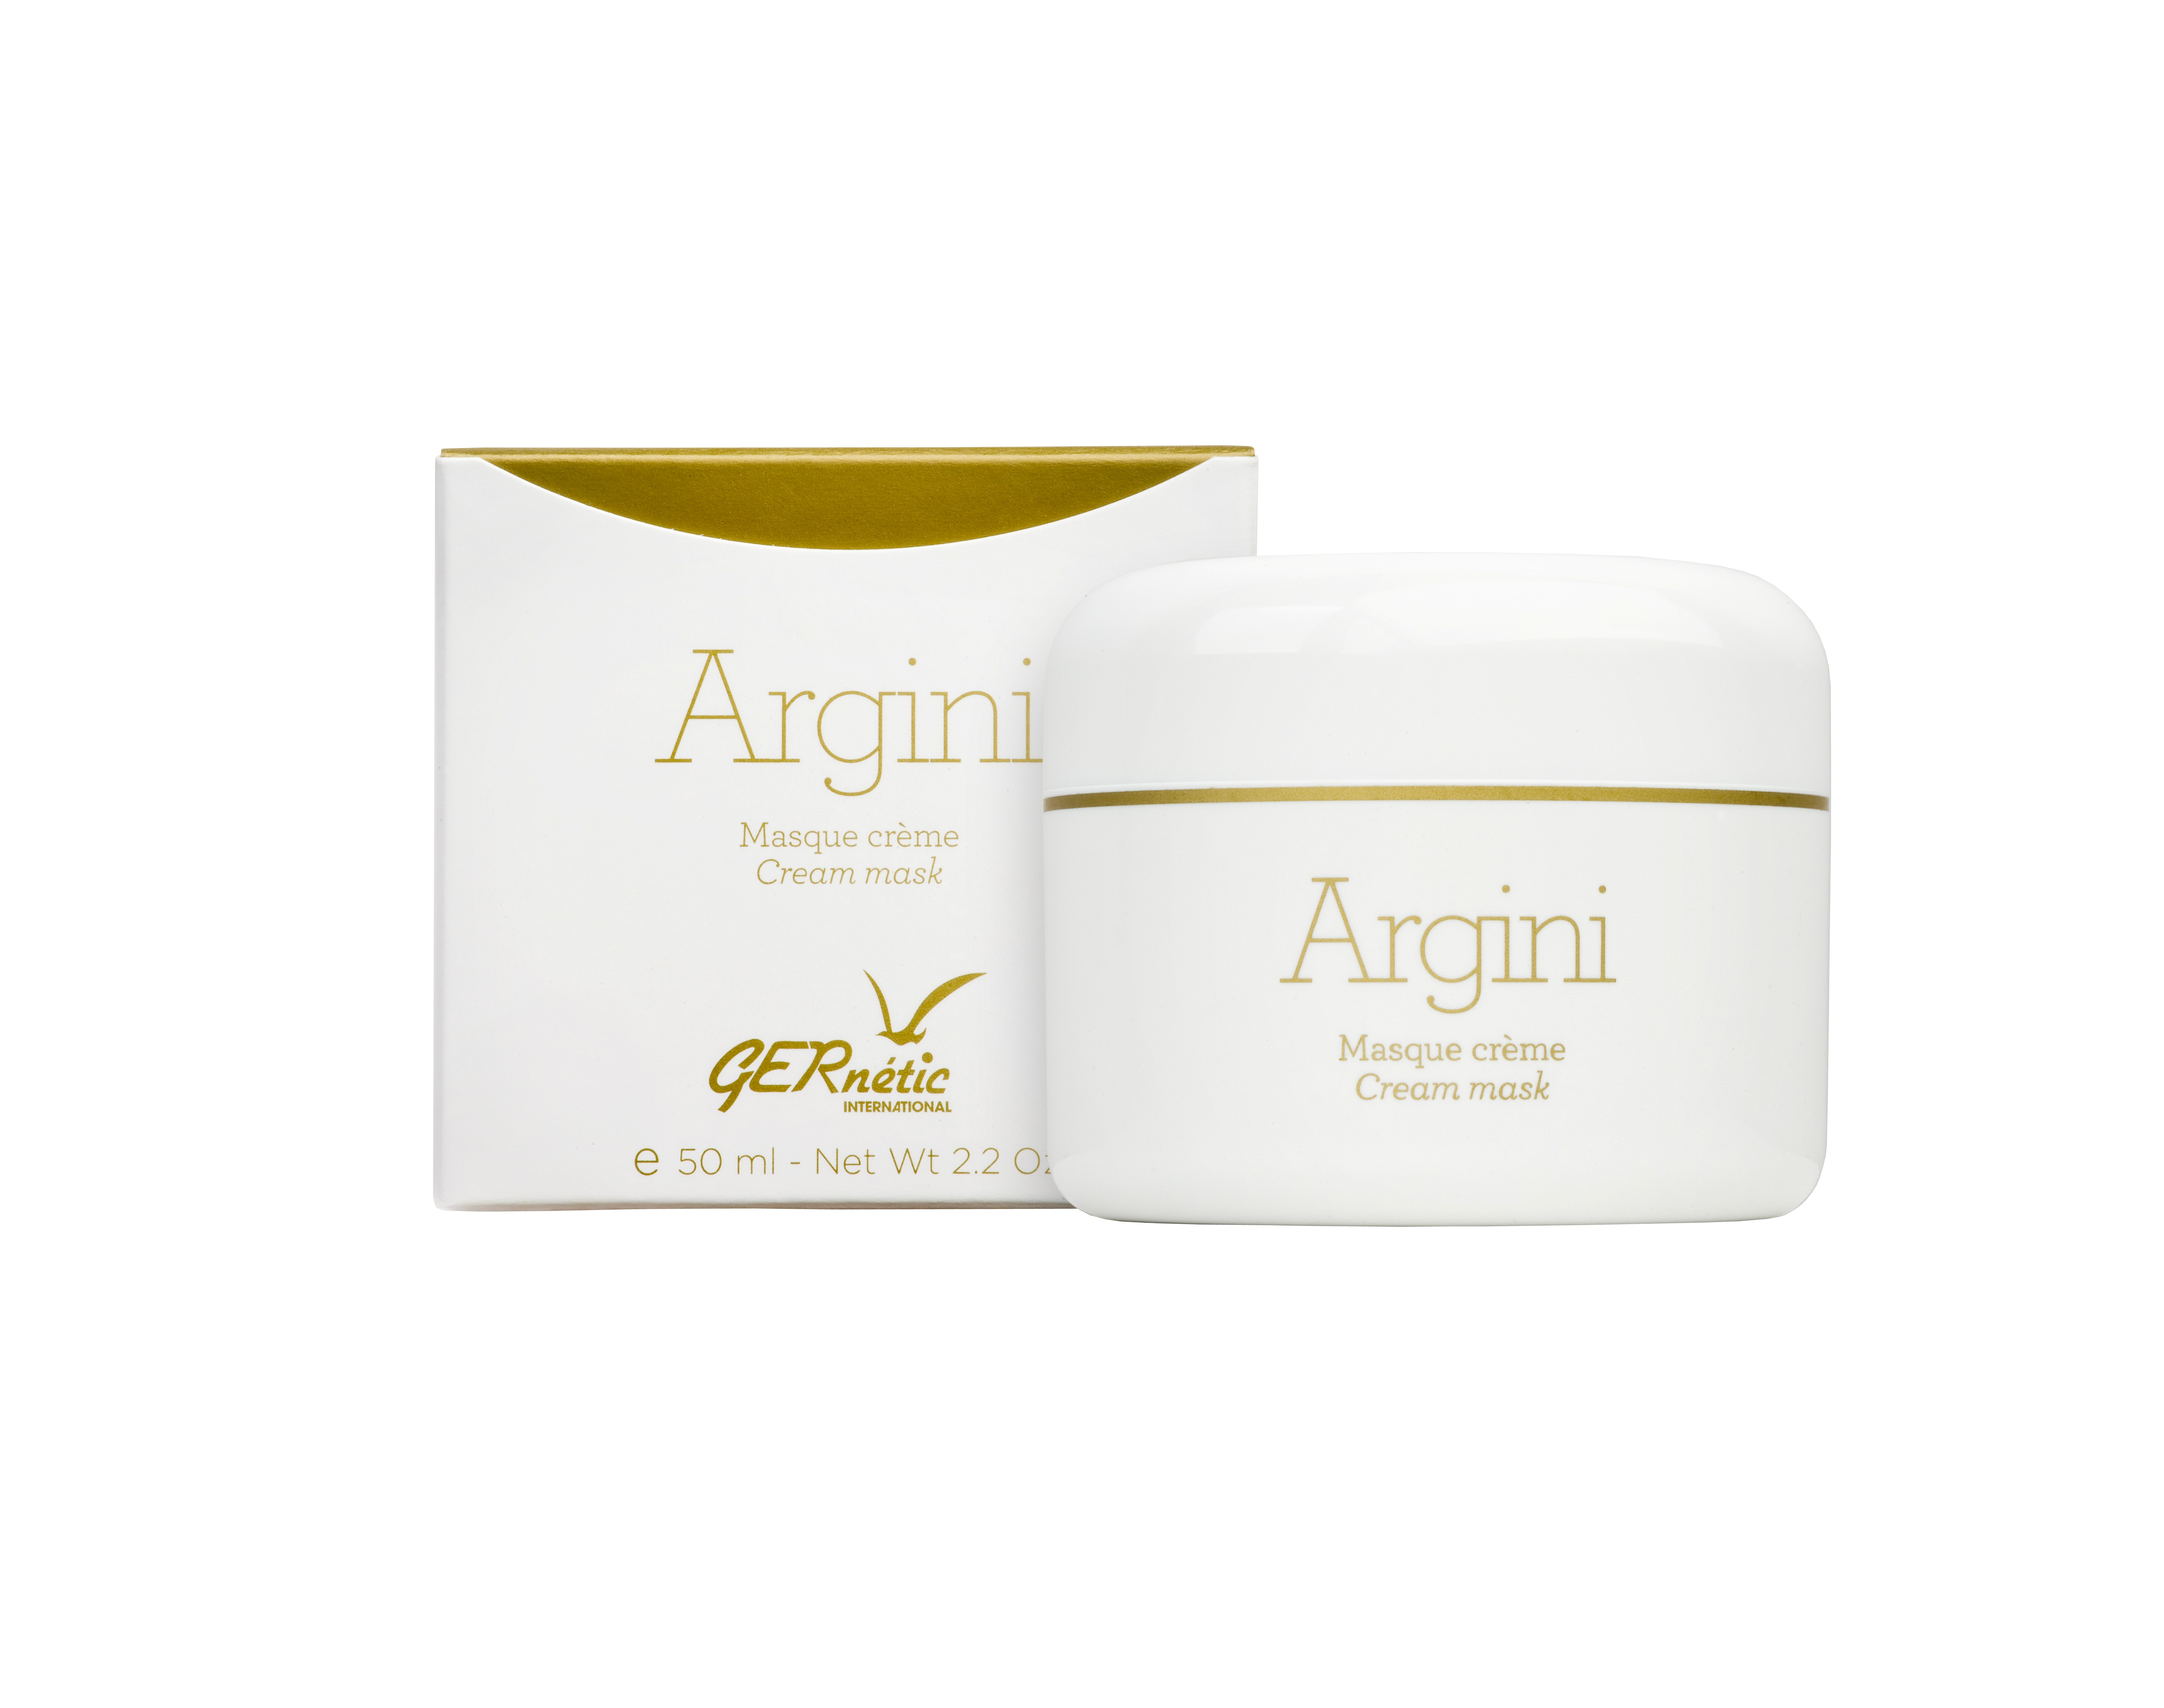 ARGINI PURIFYING AND CALMING ACNE MASK